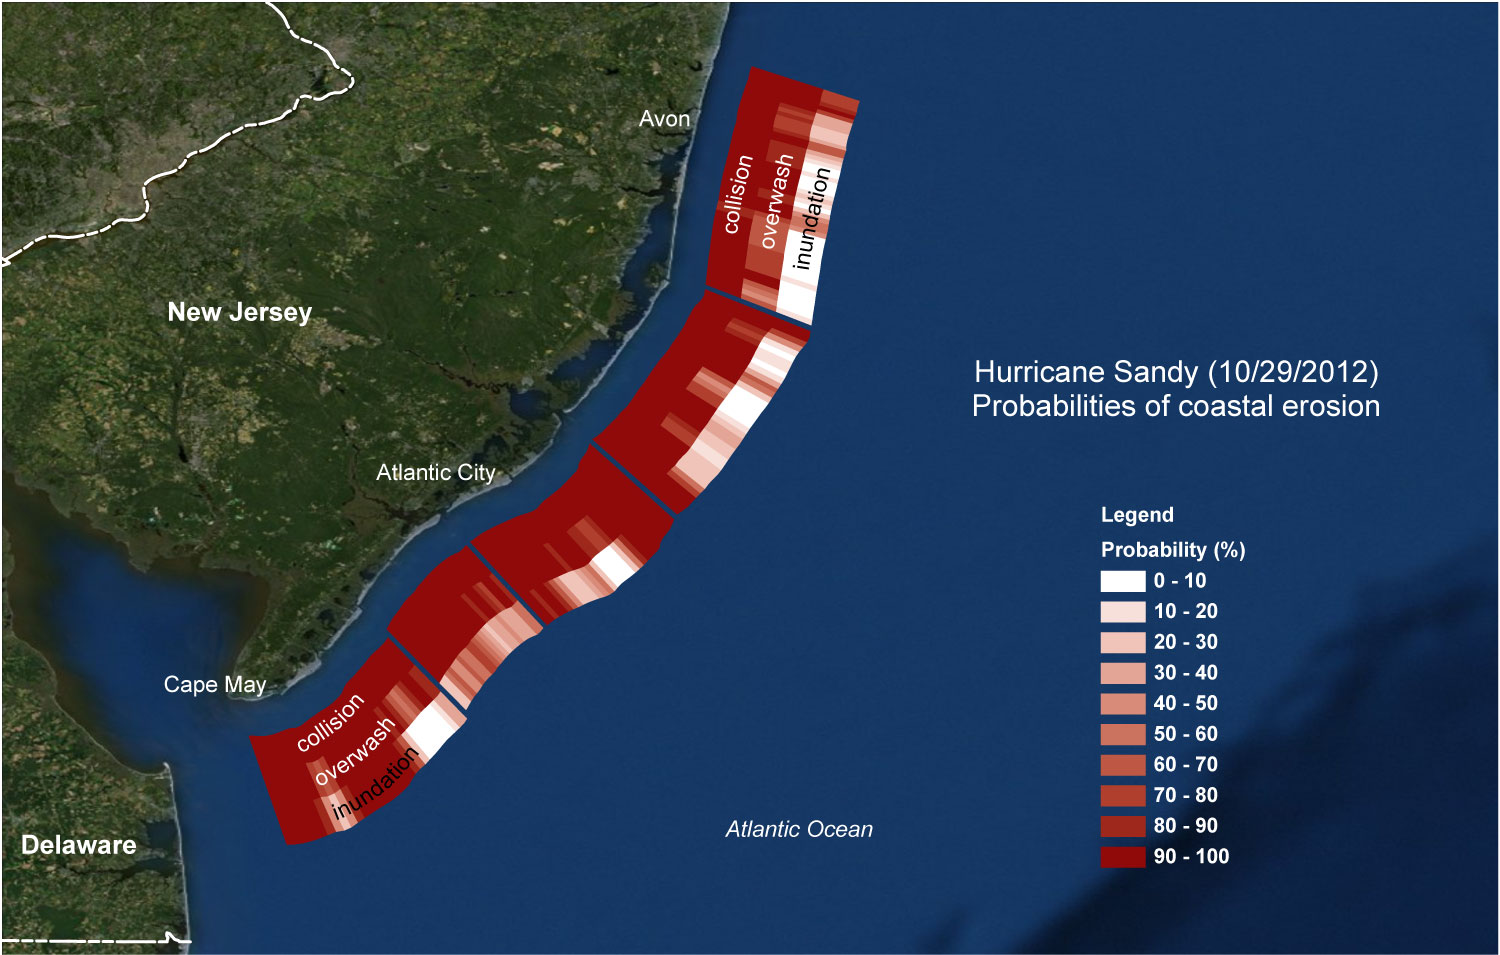 Probabilities of collision, overwash, and inundation for Sandy for the Atlantic coast of New Jersey